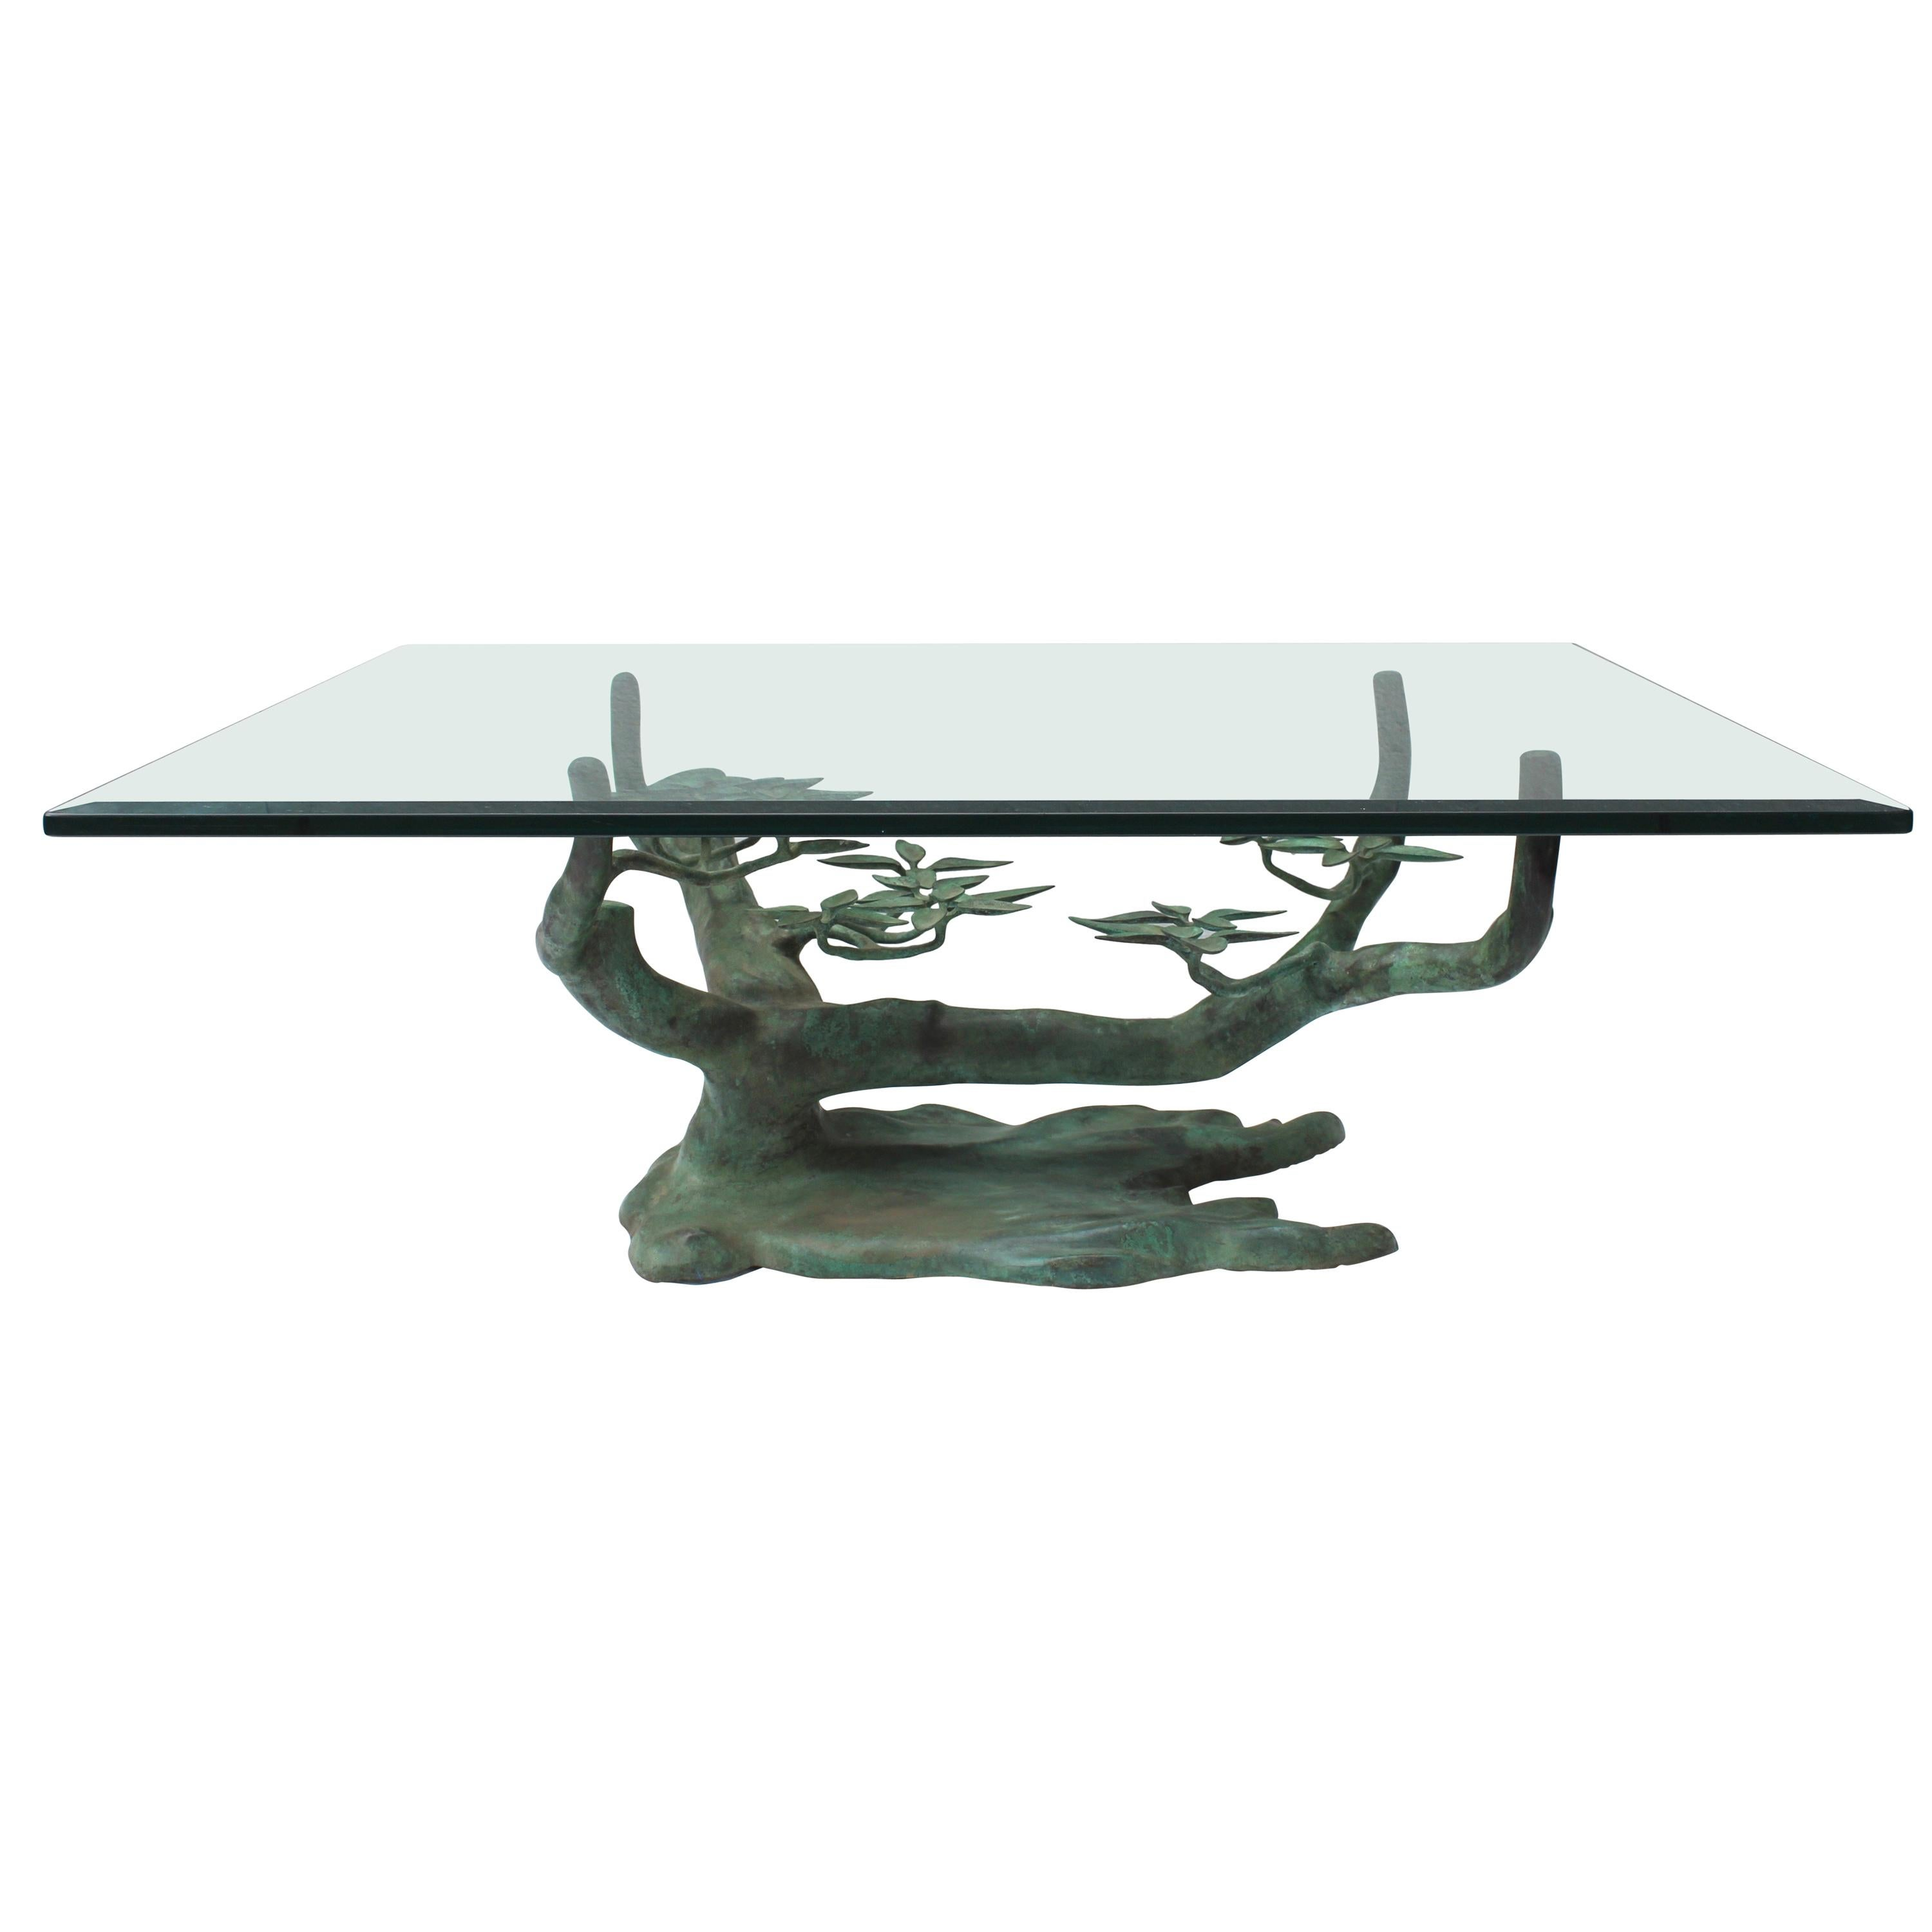 Bonsai Tree Coffee Table by Willy Daro